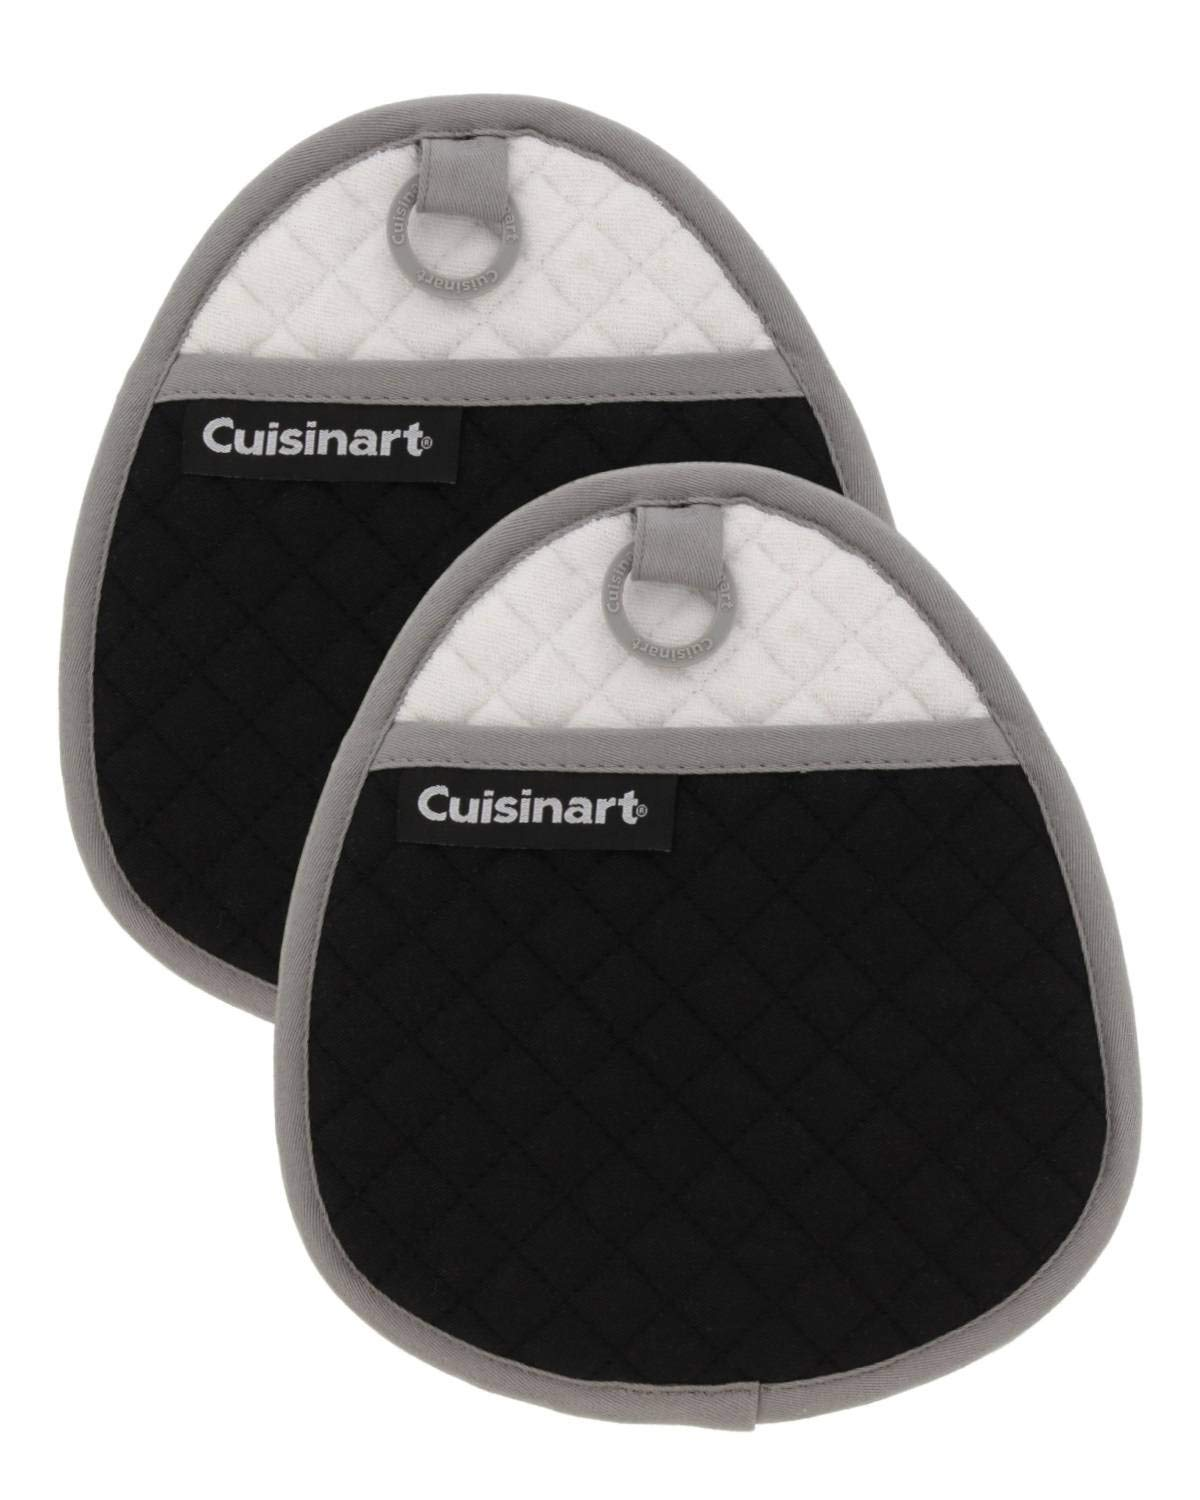 Cuisinart Quilted Silicone Potholders & Oven Mitts - Heat Resistant up to 500° F, Handle Hot Oven/Cooking Items Safely - Soft Insulated Pockets, Non-Slip Grip w/Hanging Loop, Jet Black- 2pk